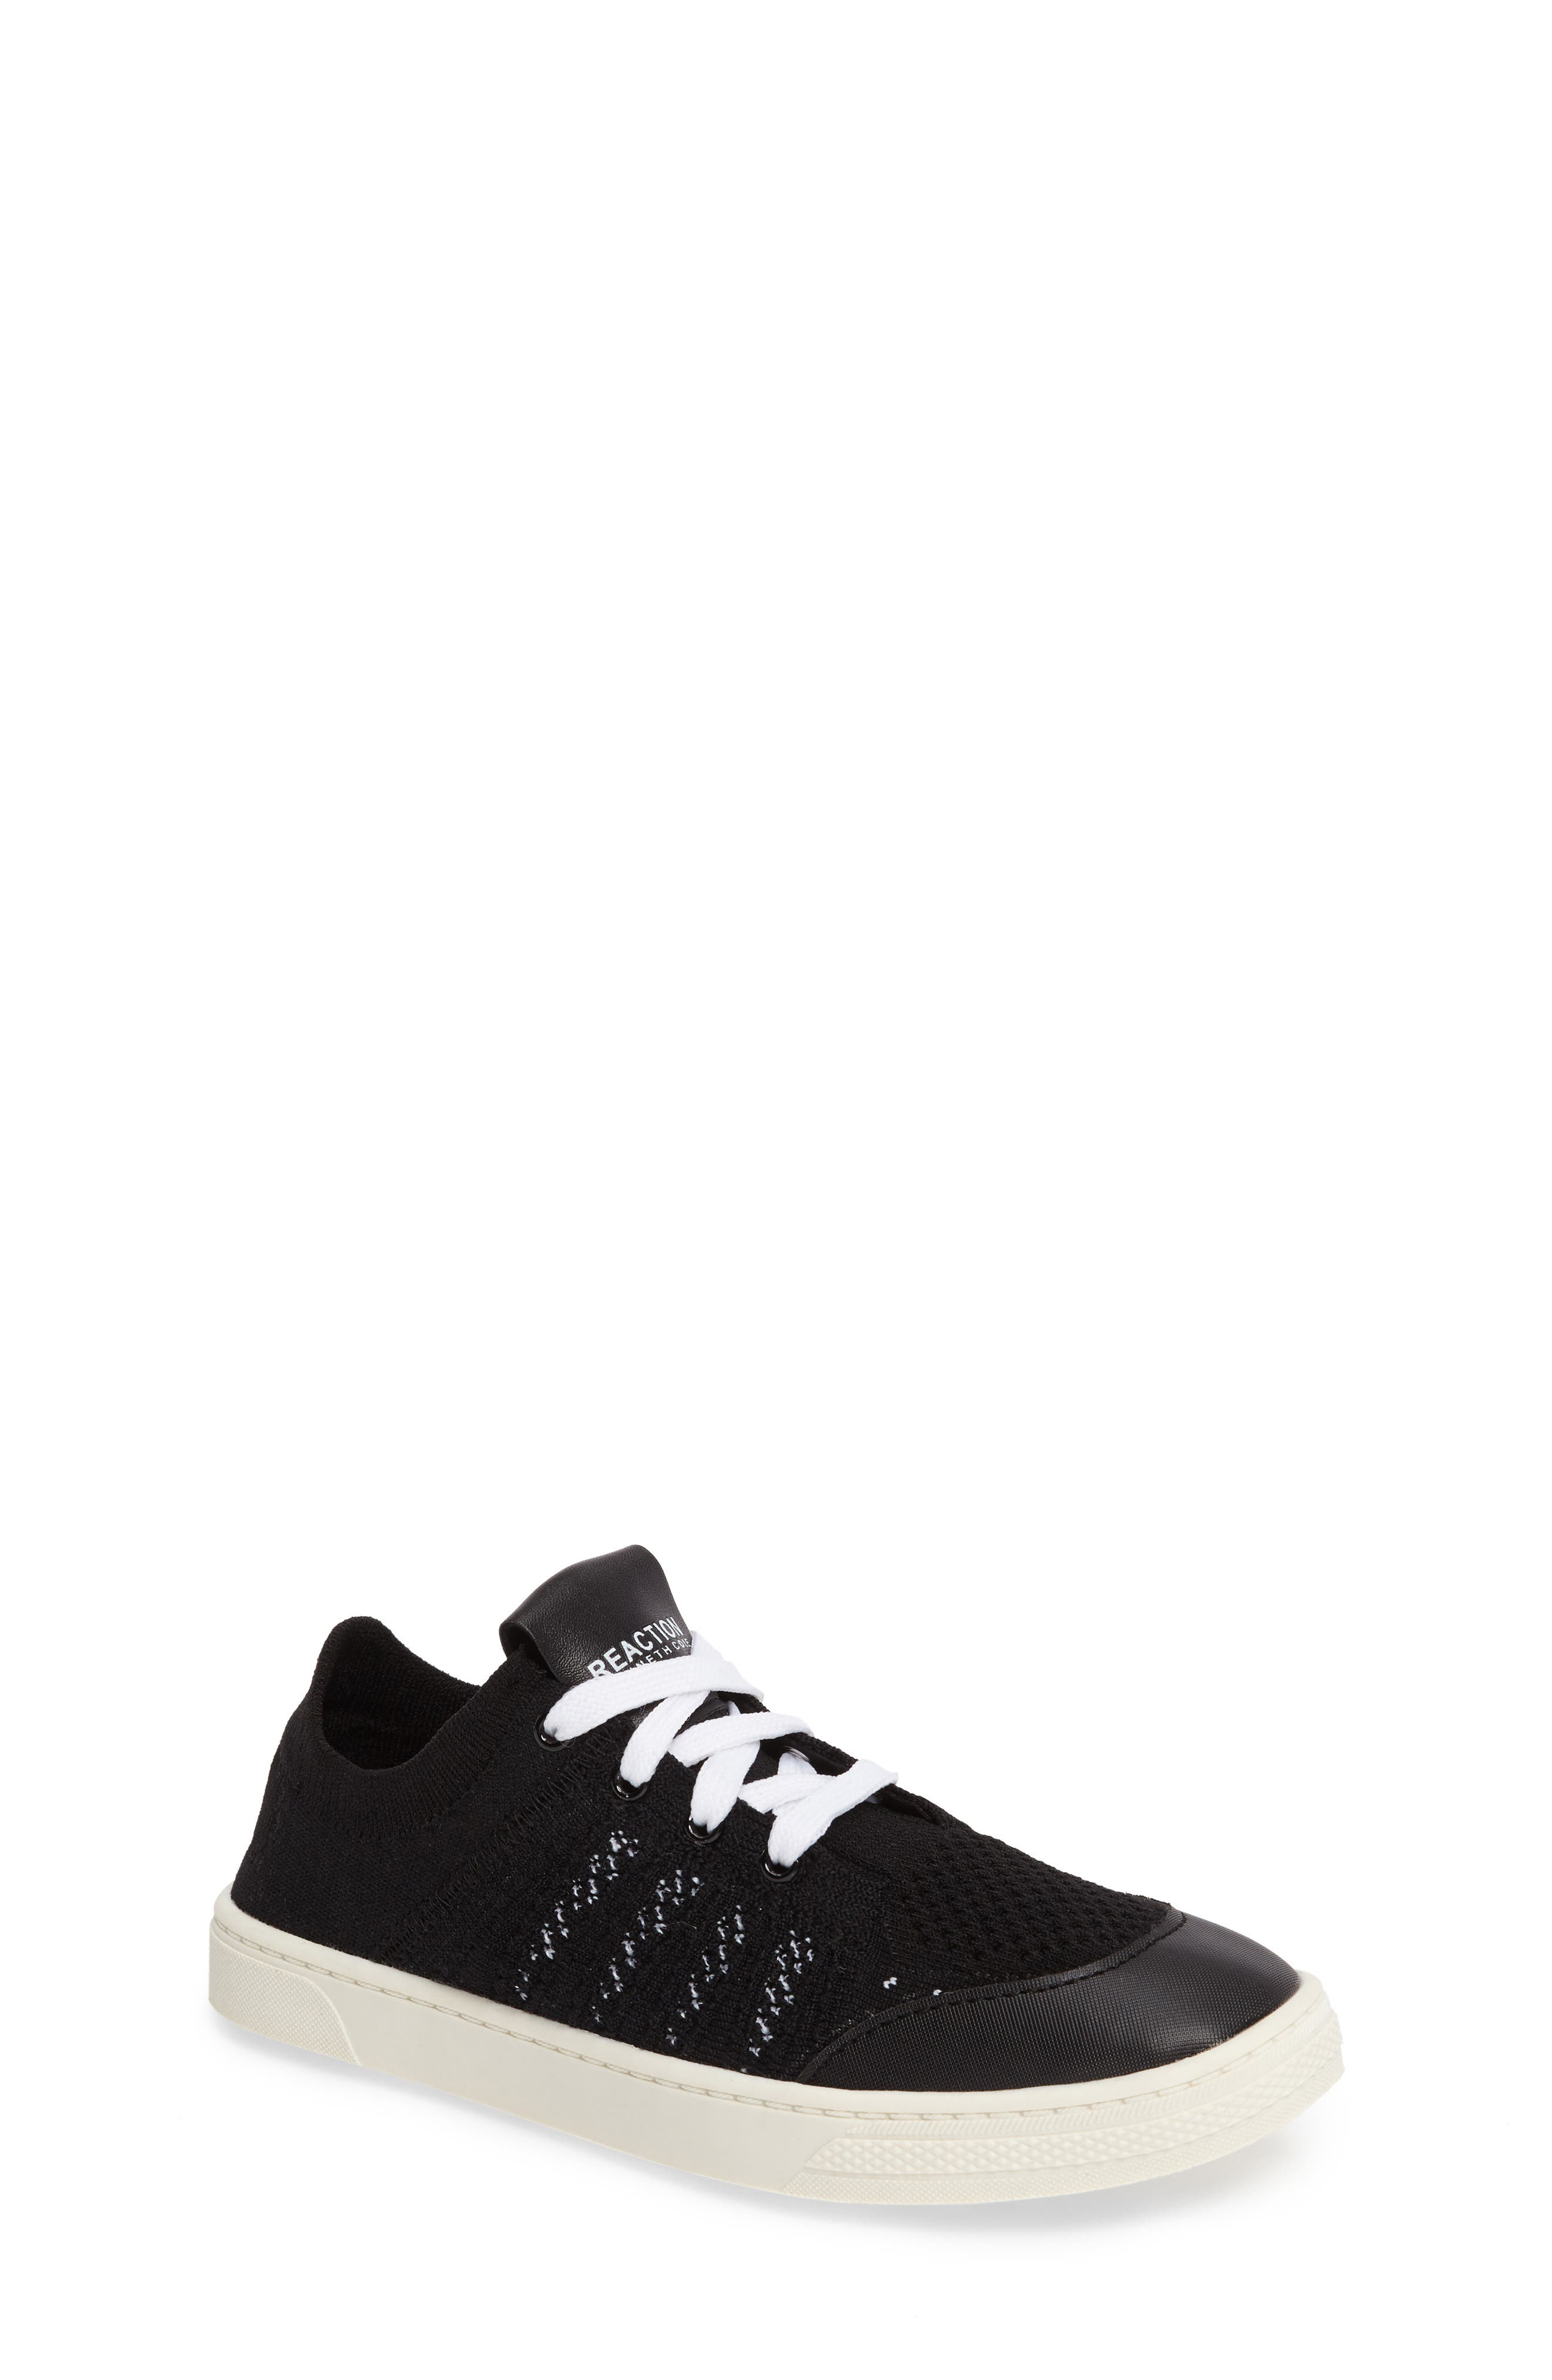 KENNETH COLE NEW YORK Kick Insight Woven Sneaker